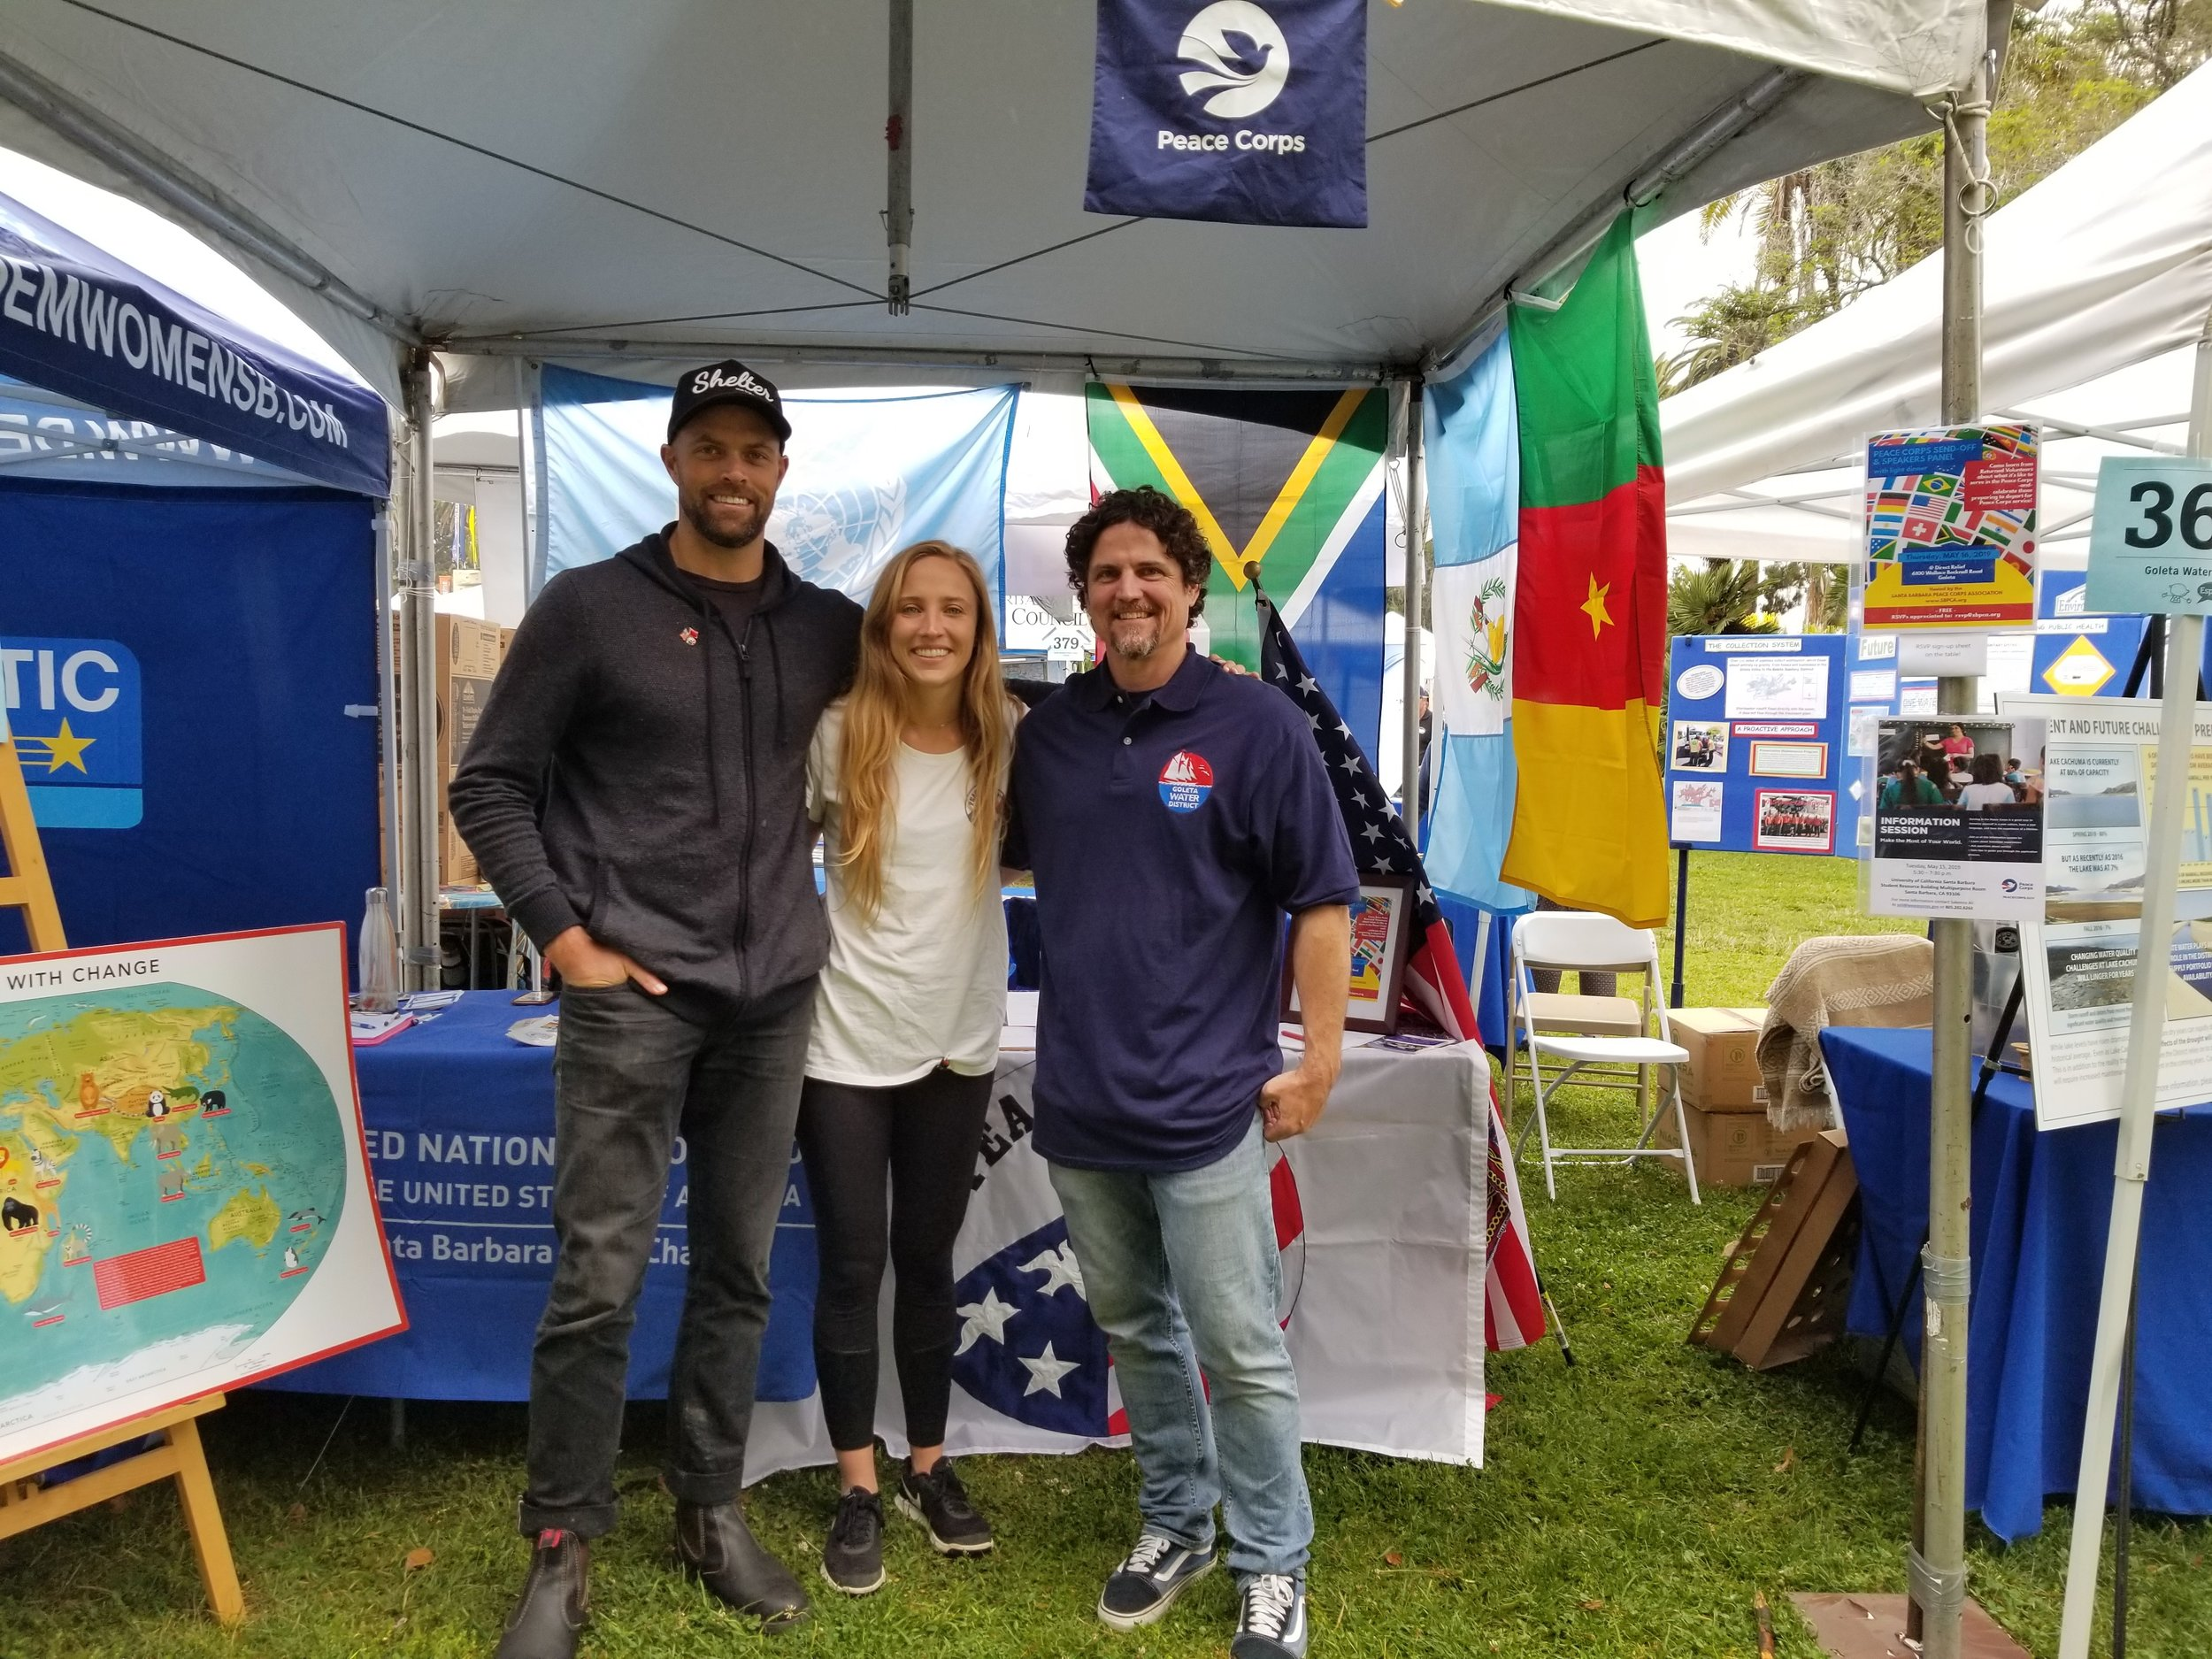 Peace Corps Booth @ Earth Day Festival - SATURDAY, APRIL 27, 2019and SUNDAY, APRIL 28, 201911:00am-6:00pm @ Alameda Park, Santa BarbaraSeveral local Returned Peace Corps Volunteers (RPCVs) came out and volunteered at our booth throughout the weekend, answering questions about the Peace Corps and Peace Corps Response, Sharing their Peace Corps experiences, encouraging interested individuals to consider applying, and letting people know about our Local Peace Corps Association.We had great foot traffic, a lot of interest, and we even connected with six local RPCVs who didn't already know about our group!